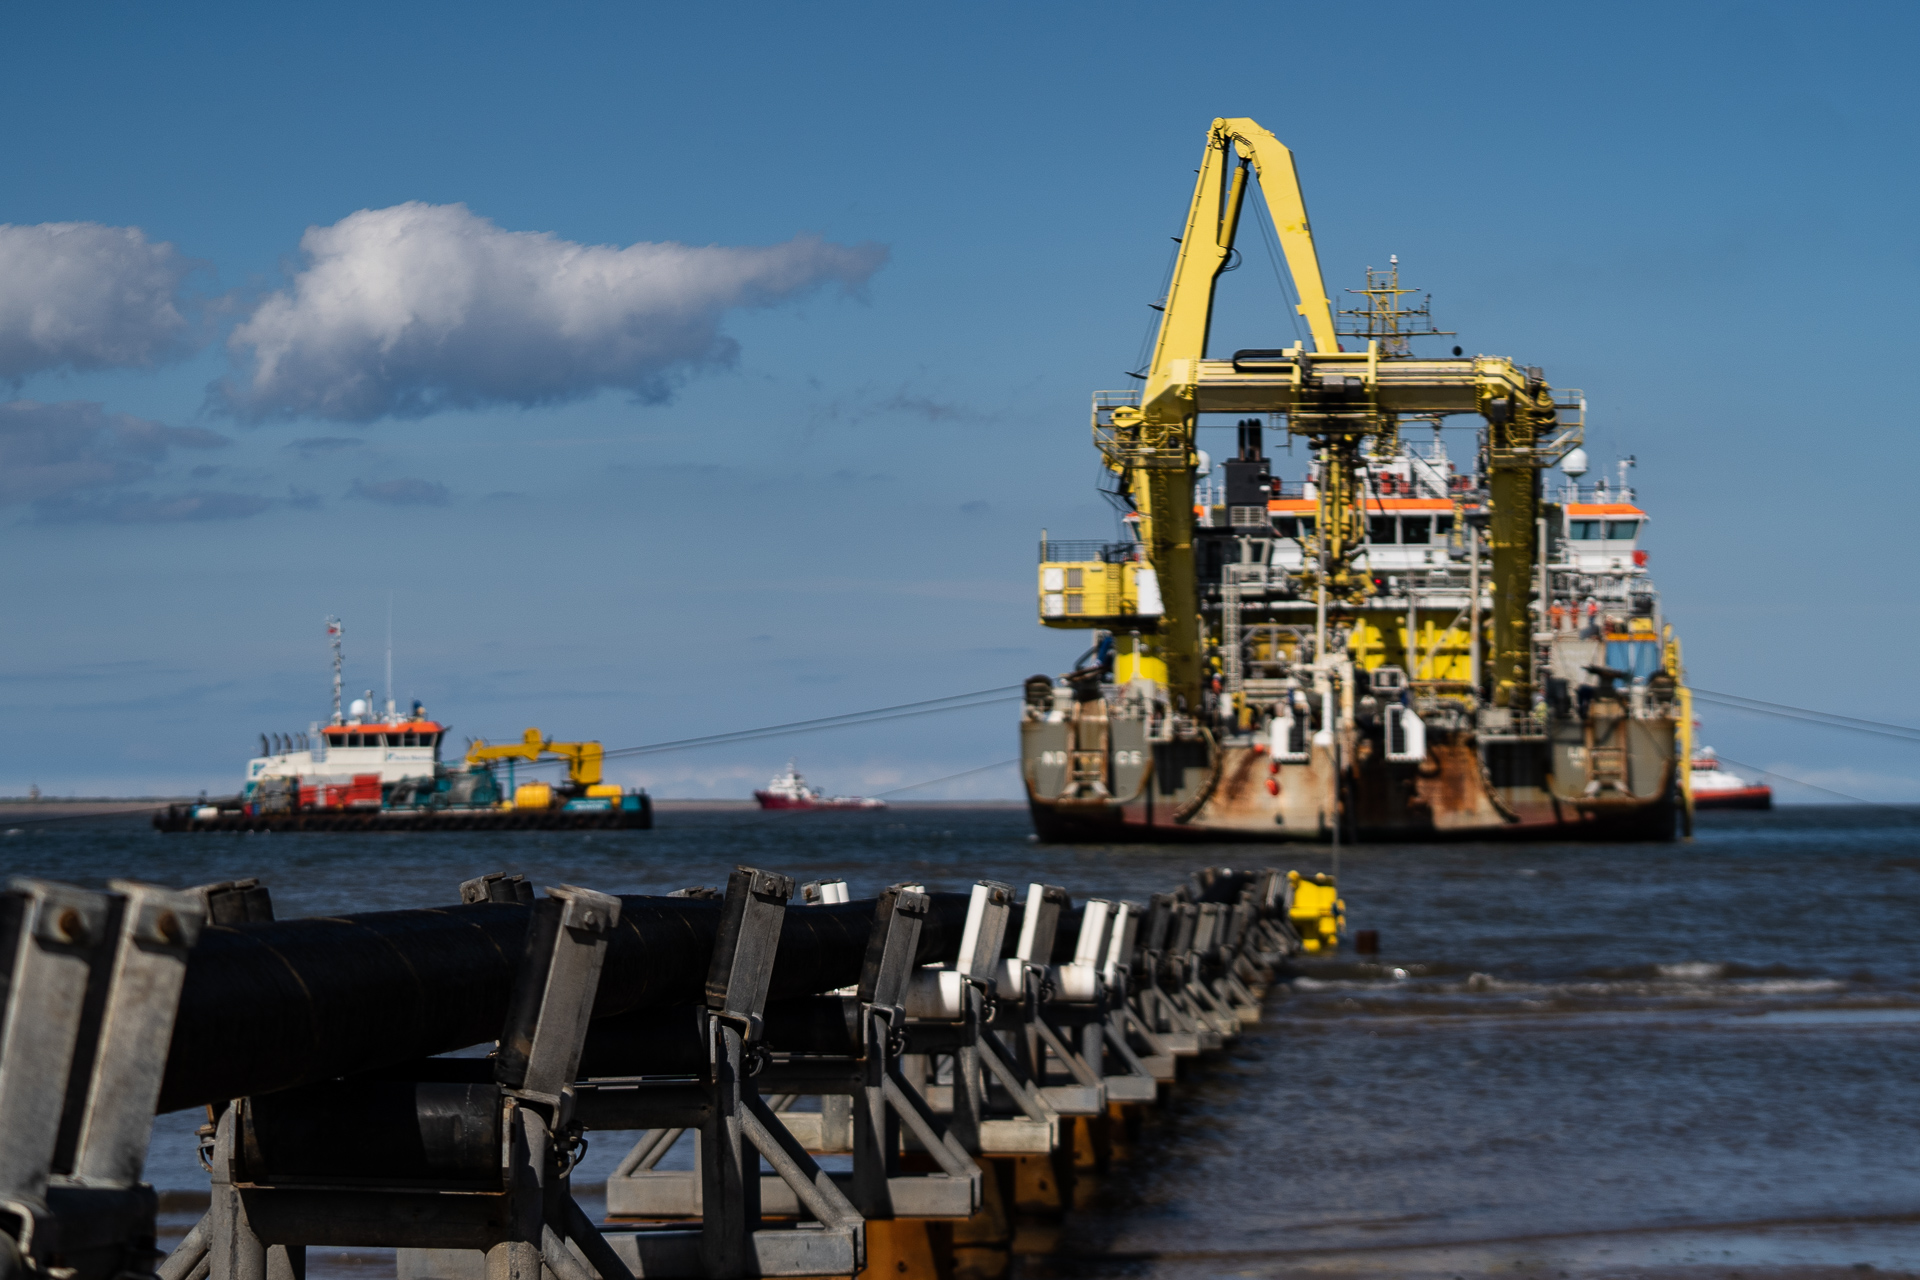 Boskalis' cable laying vessel Ndurance